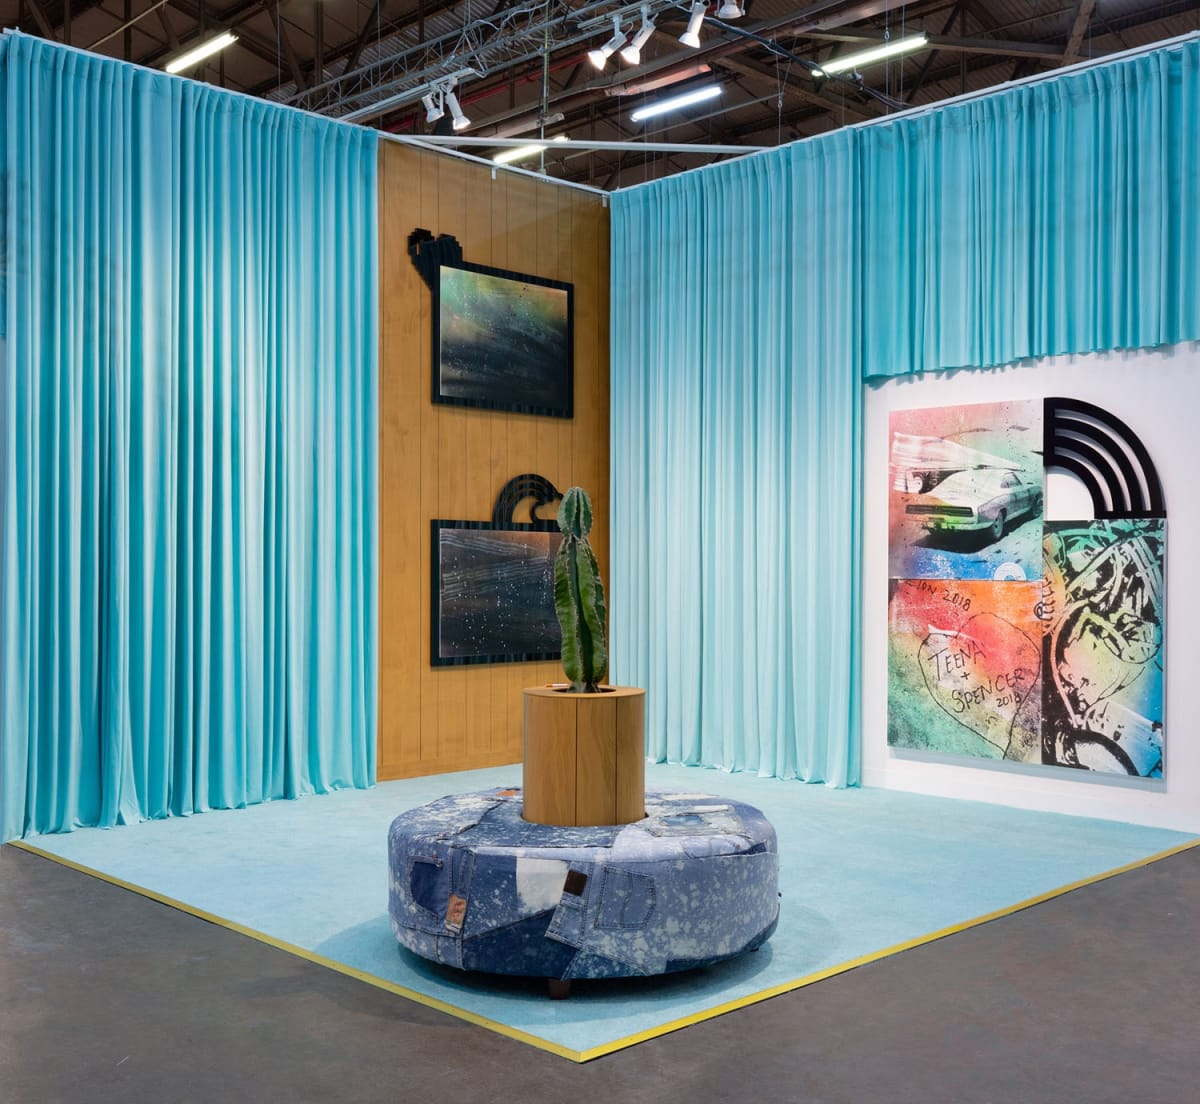 Wendy White. Seafoam (Convertible), 2020. Installation, The Armory Art Show 2020